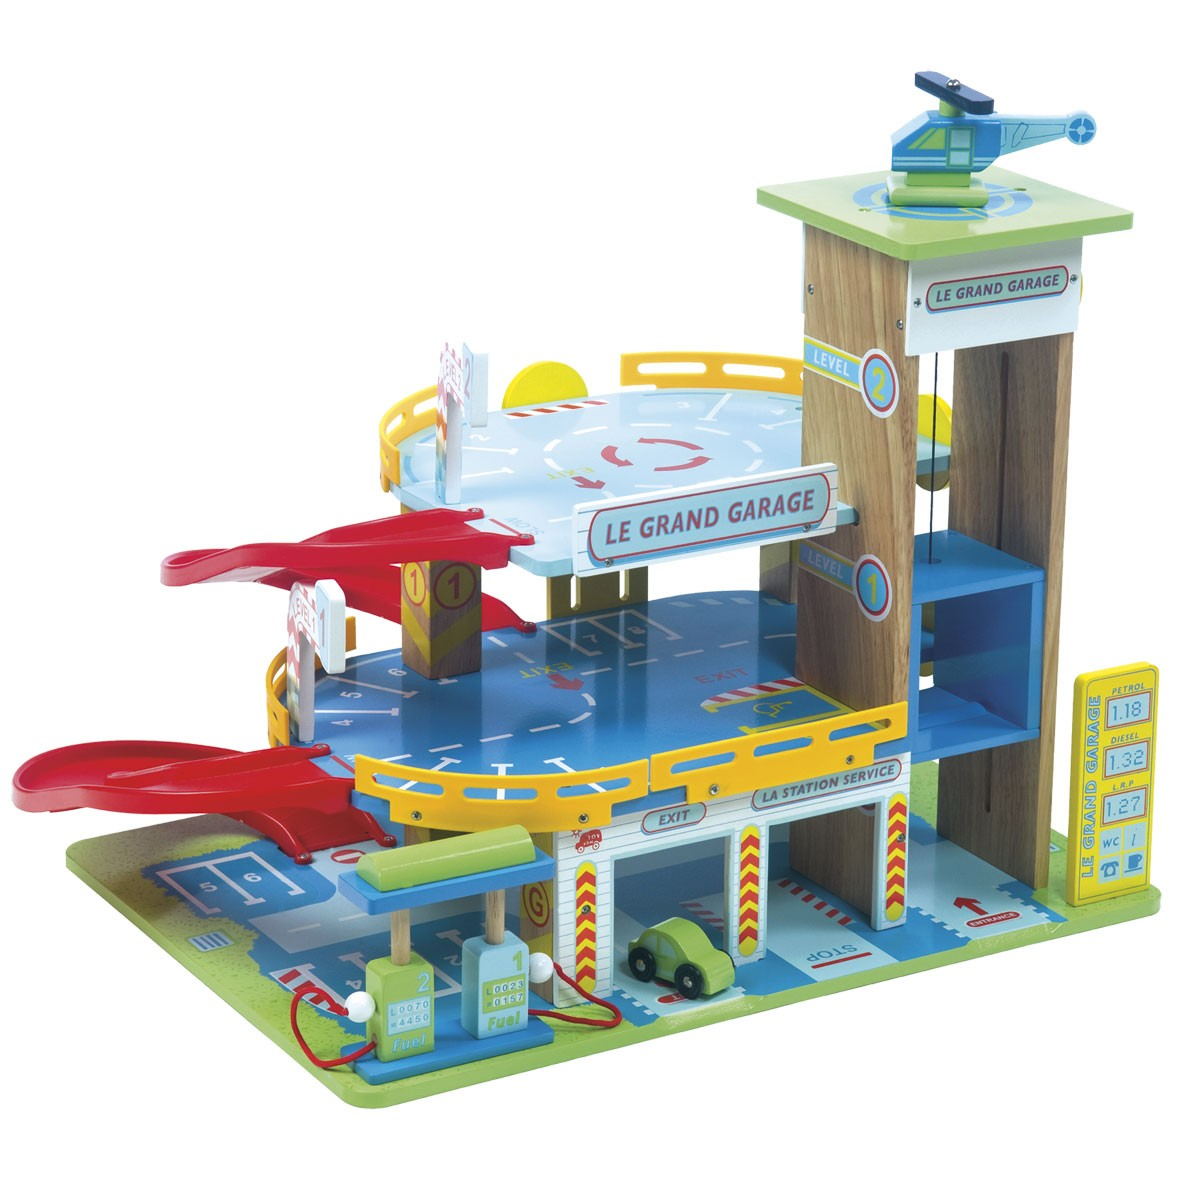 10-of-the-best-toys-for-4-year-olds_210507